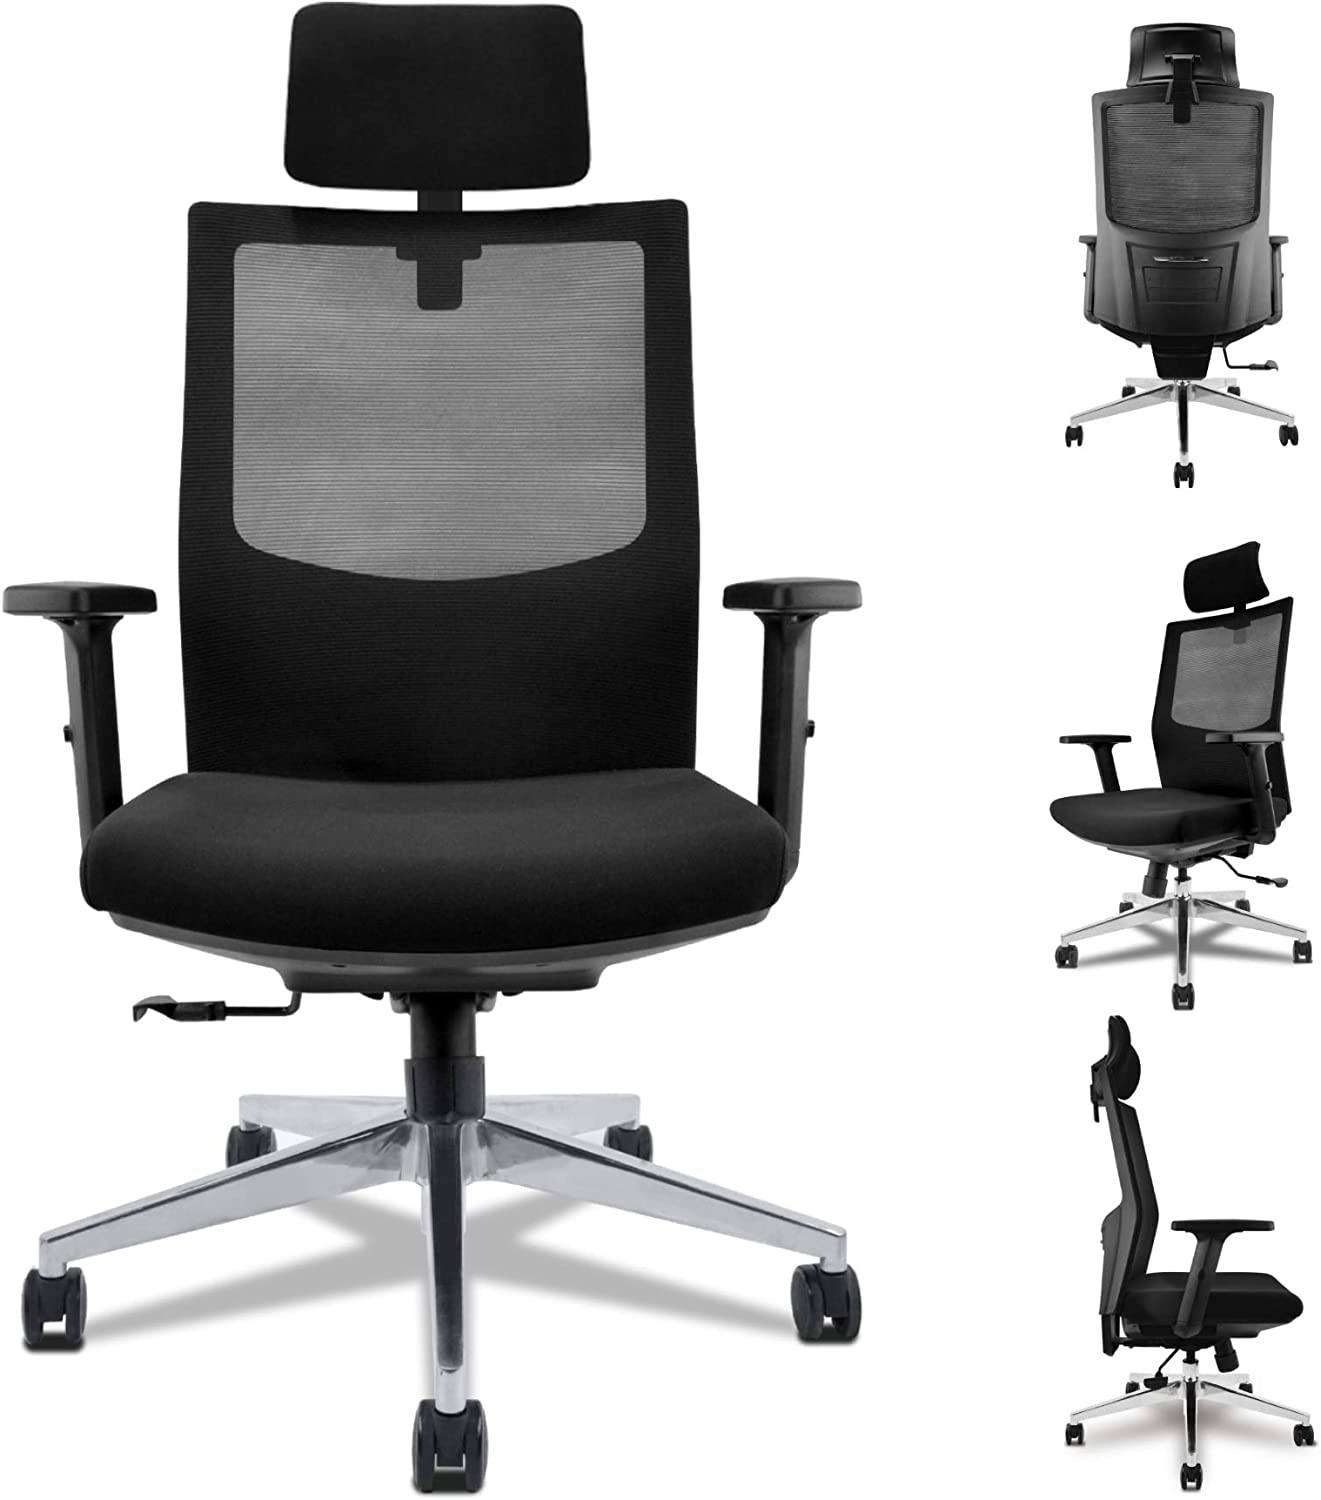 Diouseas Office Computer Desk Chair Ergonomic Mesh Chair with Adjustable Lumbar Support WAS £179 NOW £115.30 w/code LRC6Q4TP + £10 voucher on listing @ Amazon